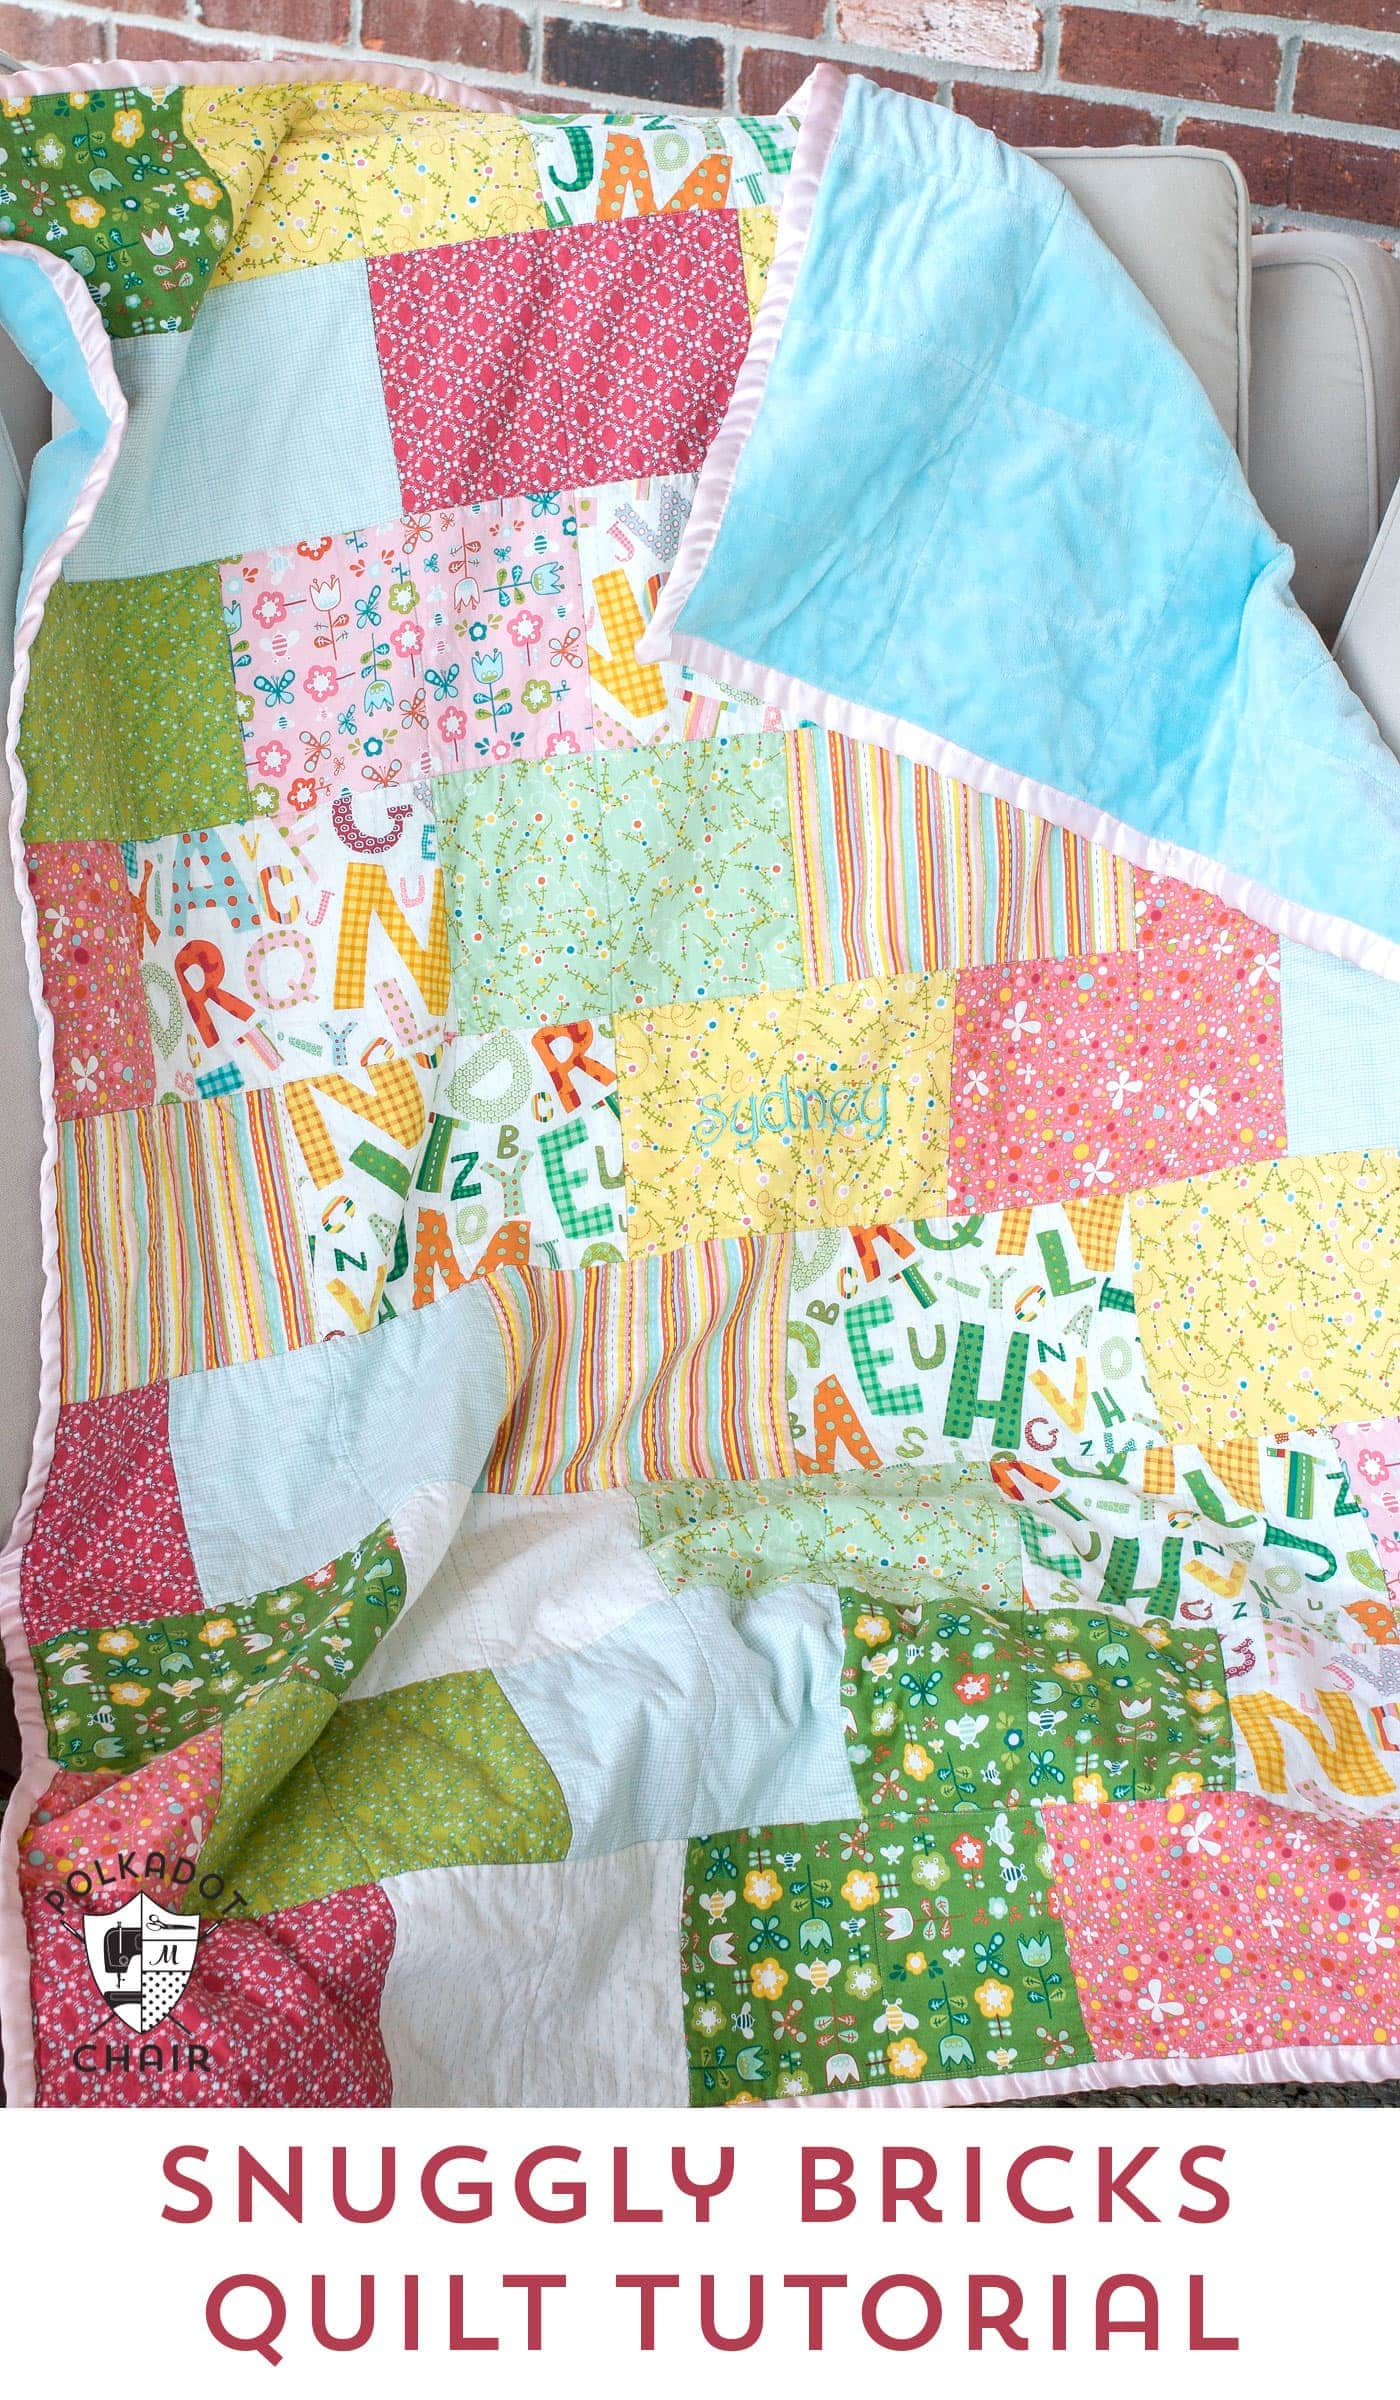 Snuggly Bricks Quilt Tuesday Tutorial The Polkadot Chair